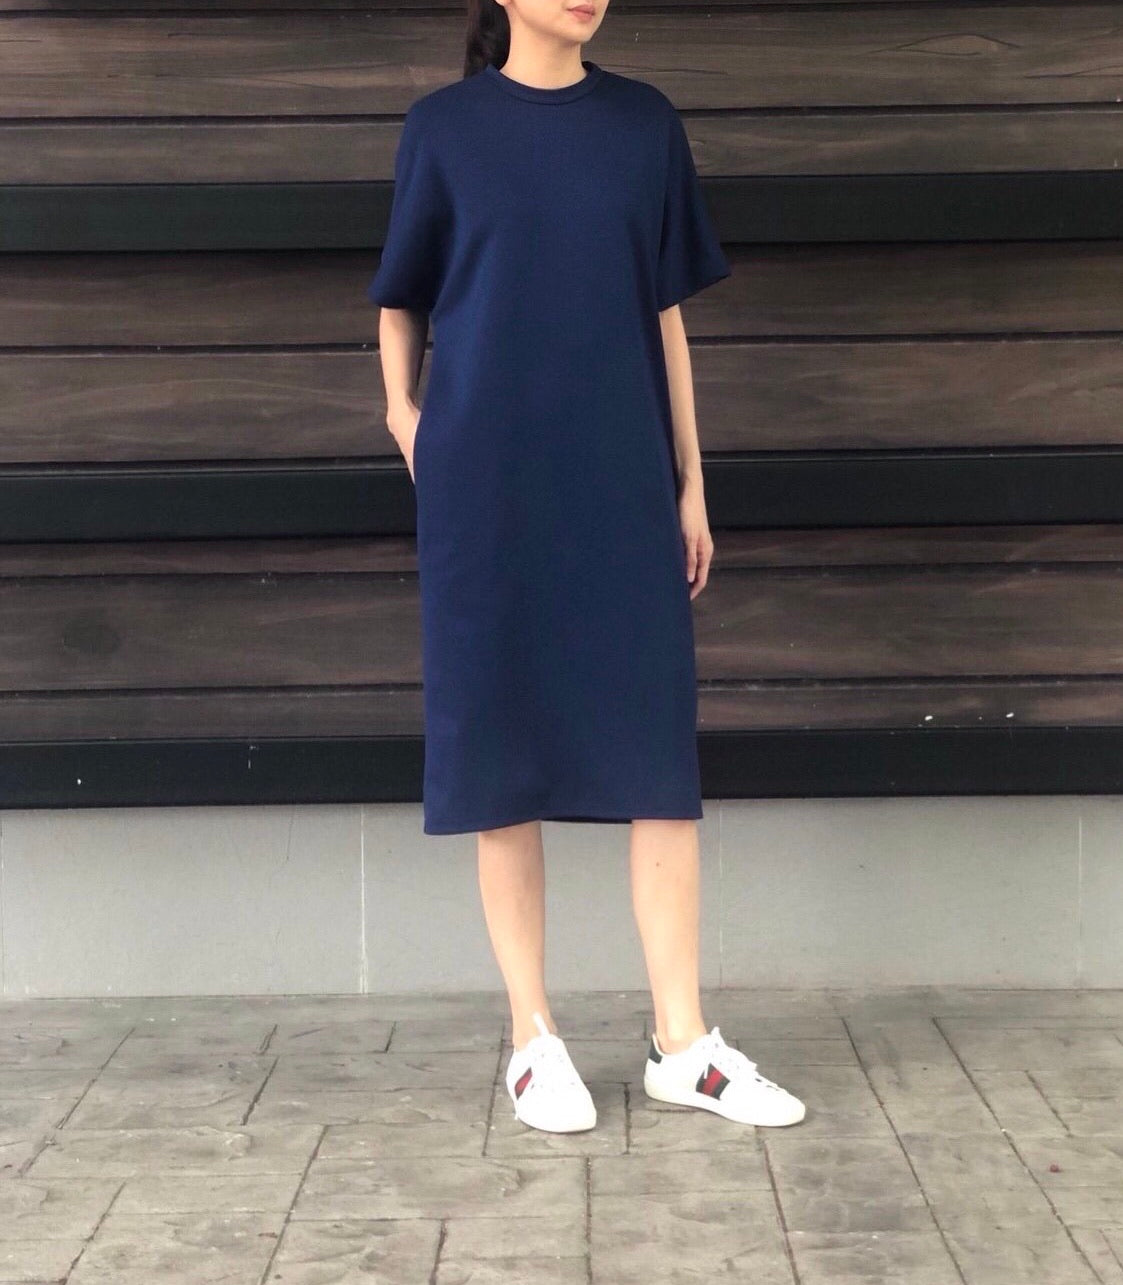 Zen Shirt Dress in Navy